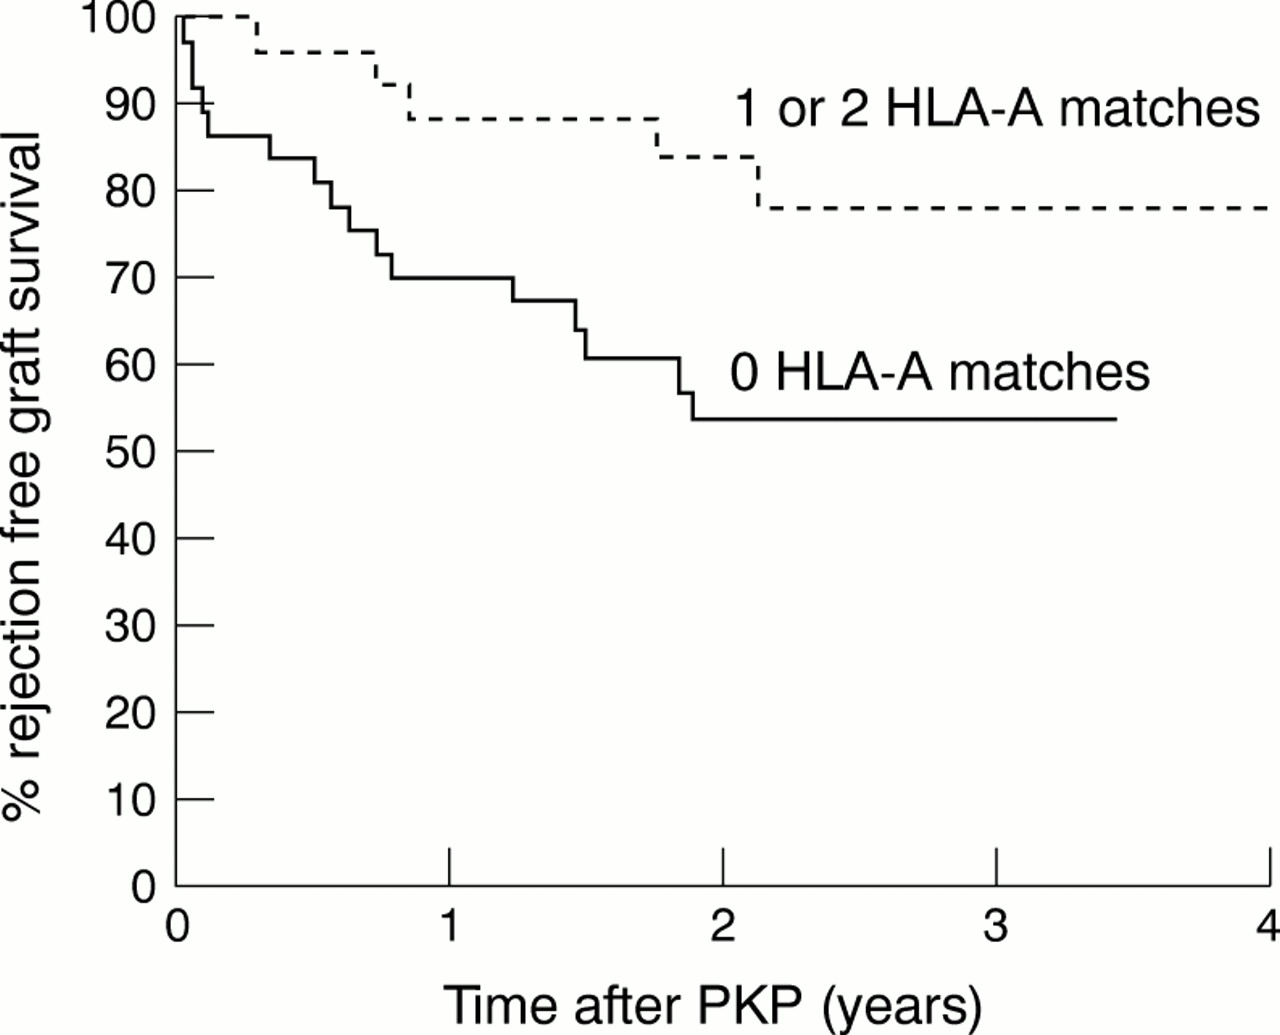 Influence of HLA-A, HLA-B, and HLA-DR matching on rejection